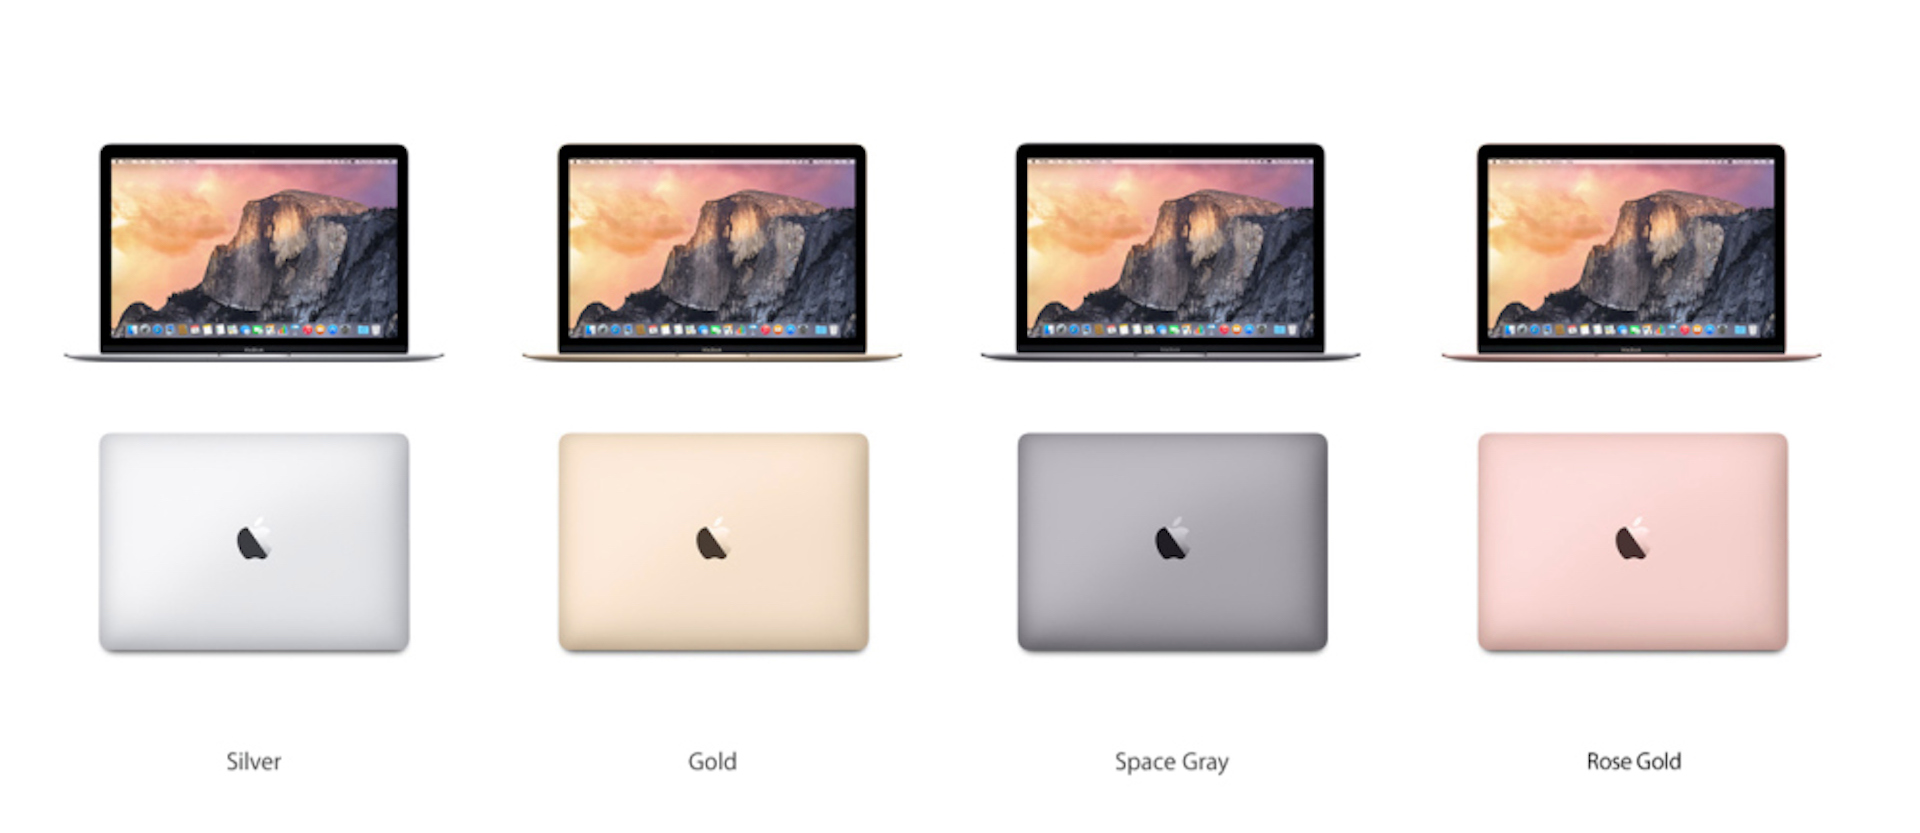 Apple May Expand Rose Gold Color To Other Products